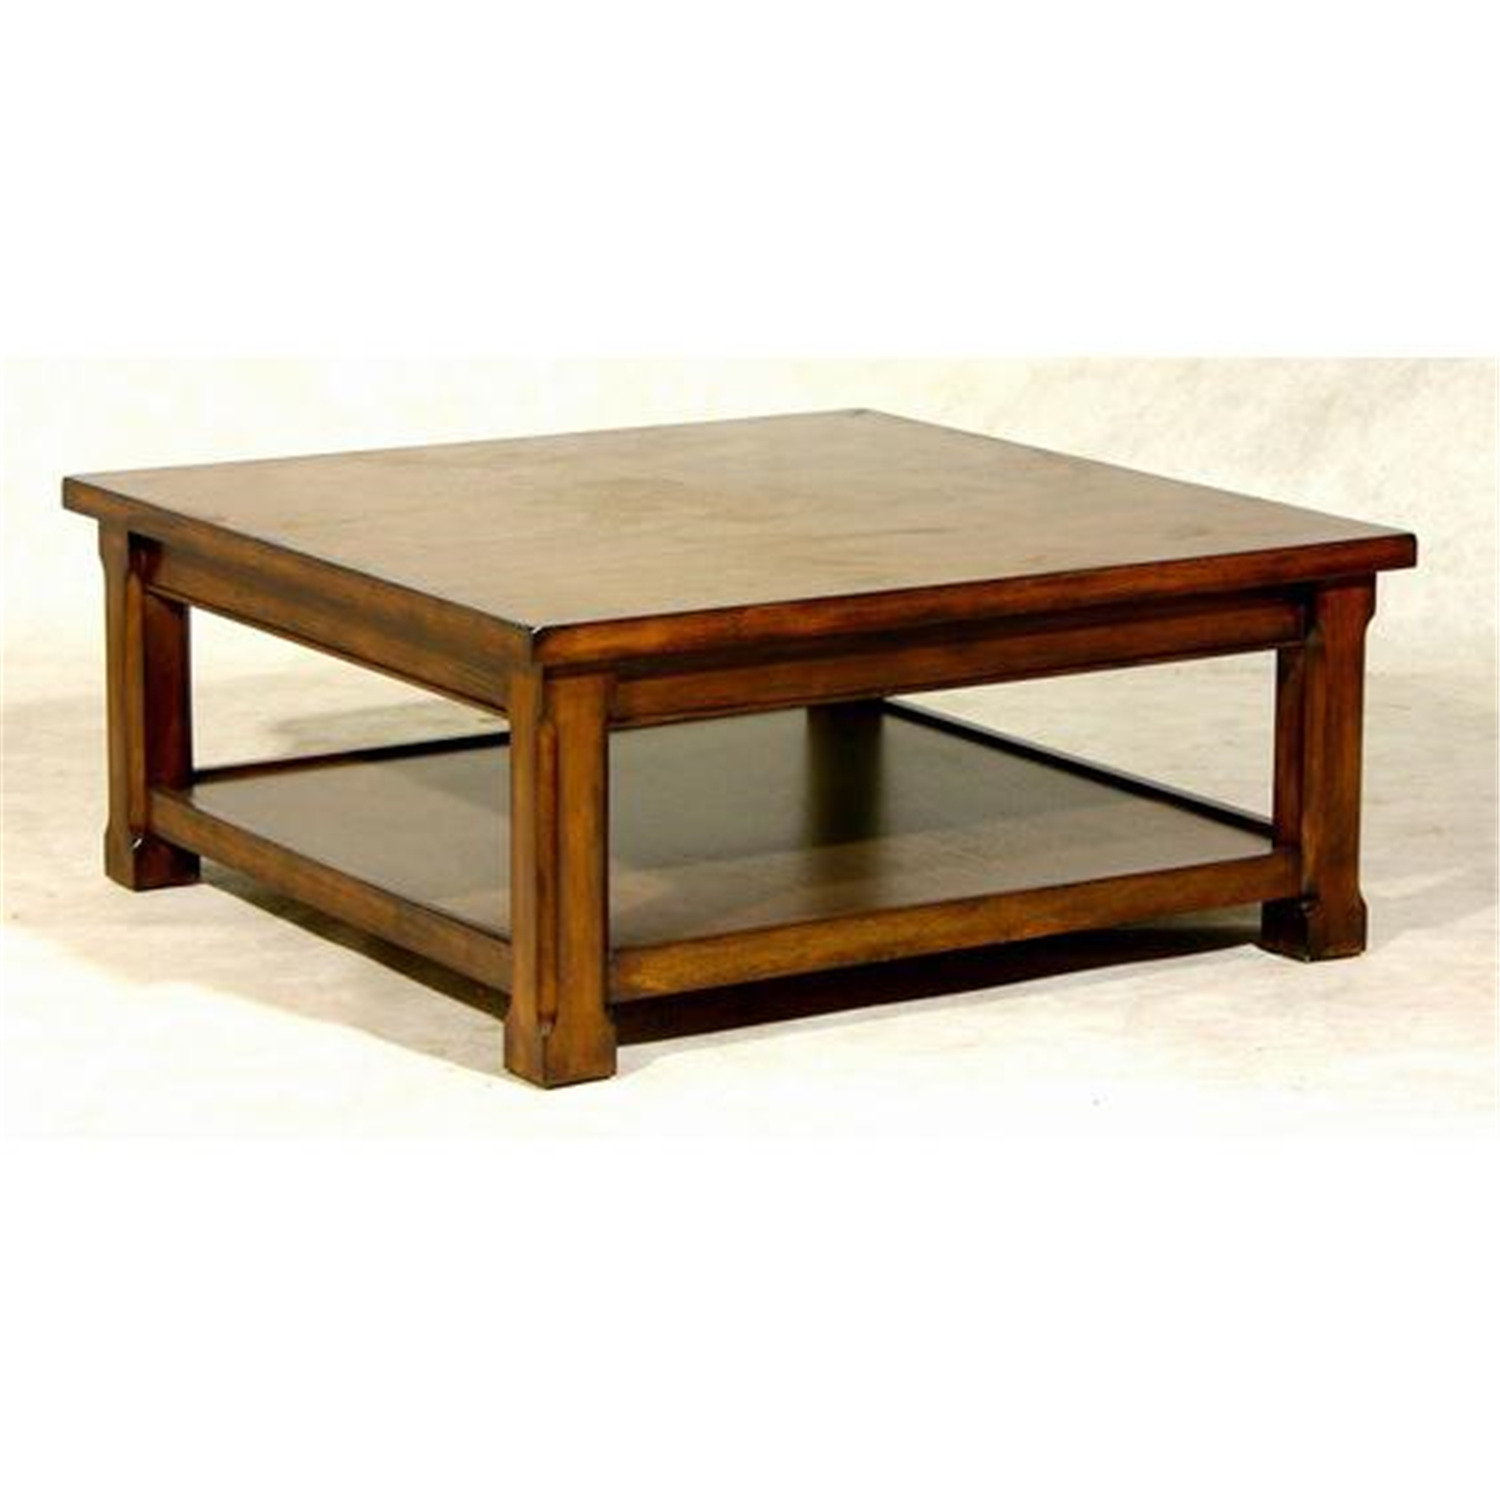 Low Black Square Coffee Table: Square Low Coffee Table